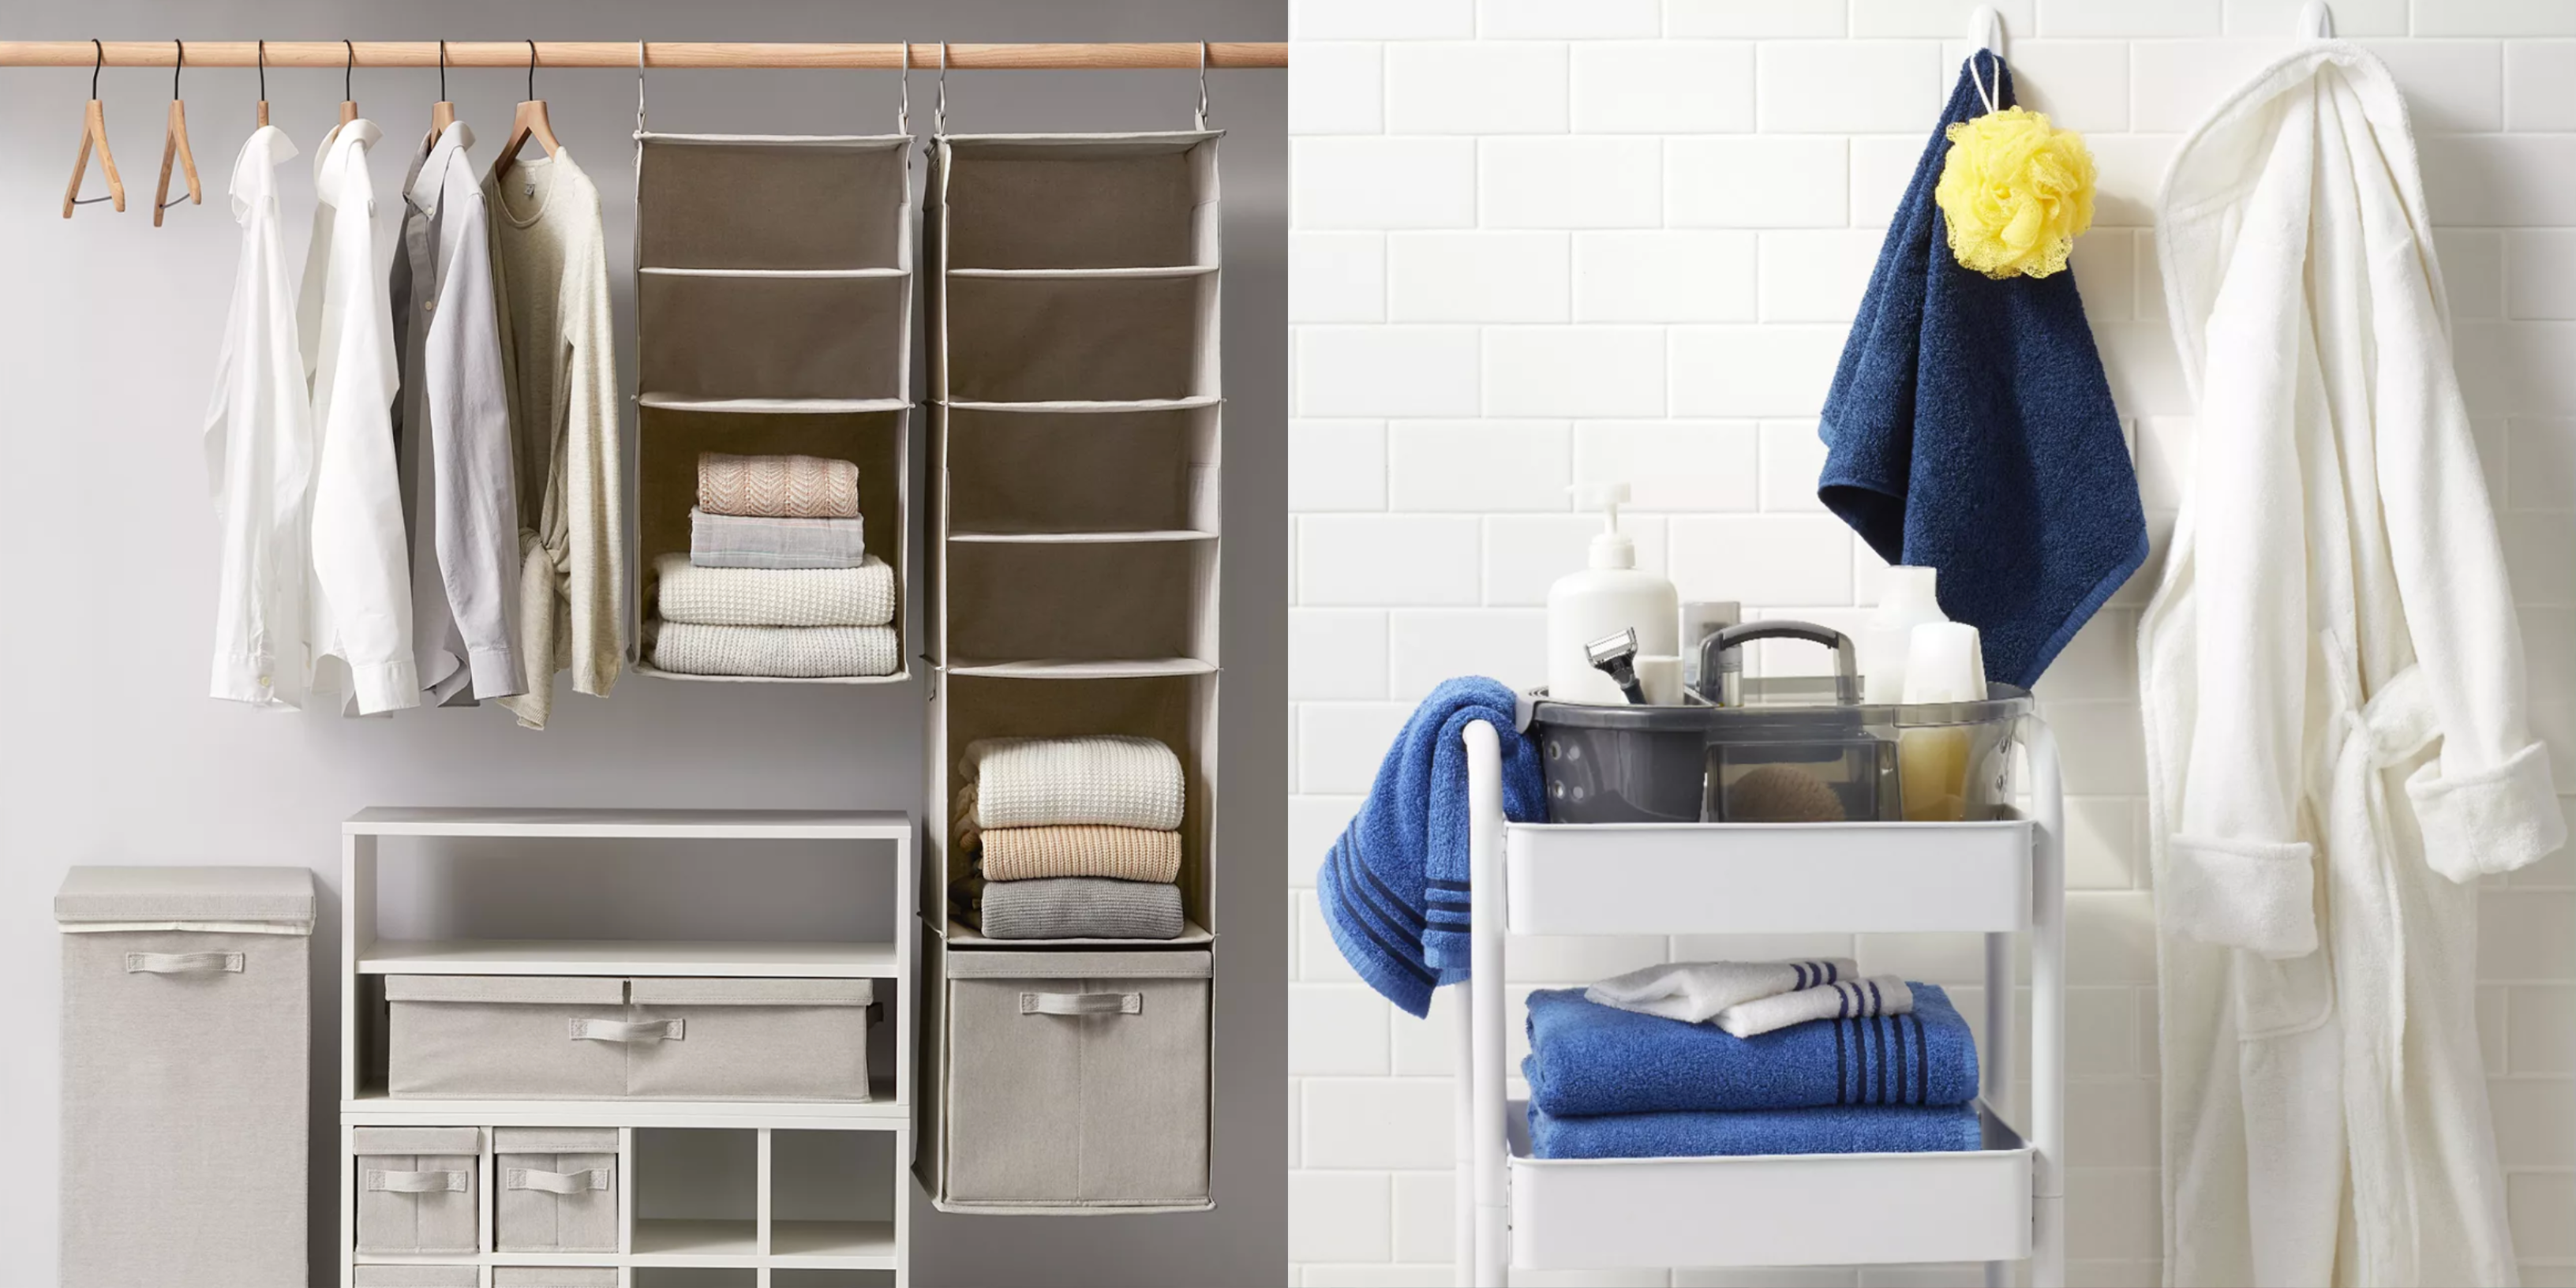 10 Best Organizers And Storage Products At Target Made By Design Organizers For Closet Kitchen Bathroom